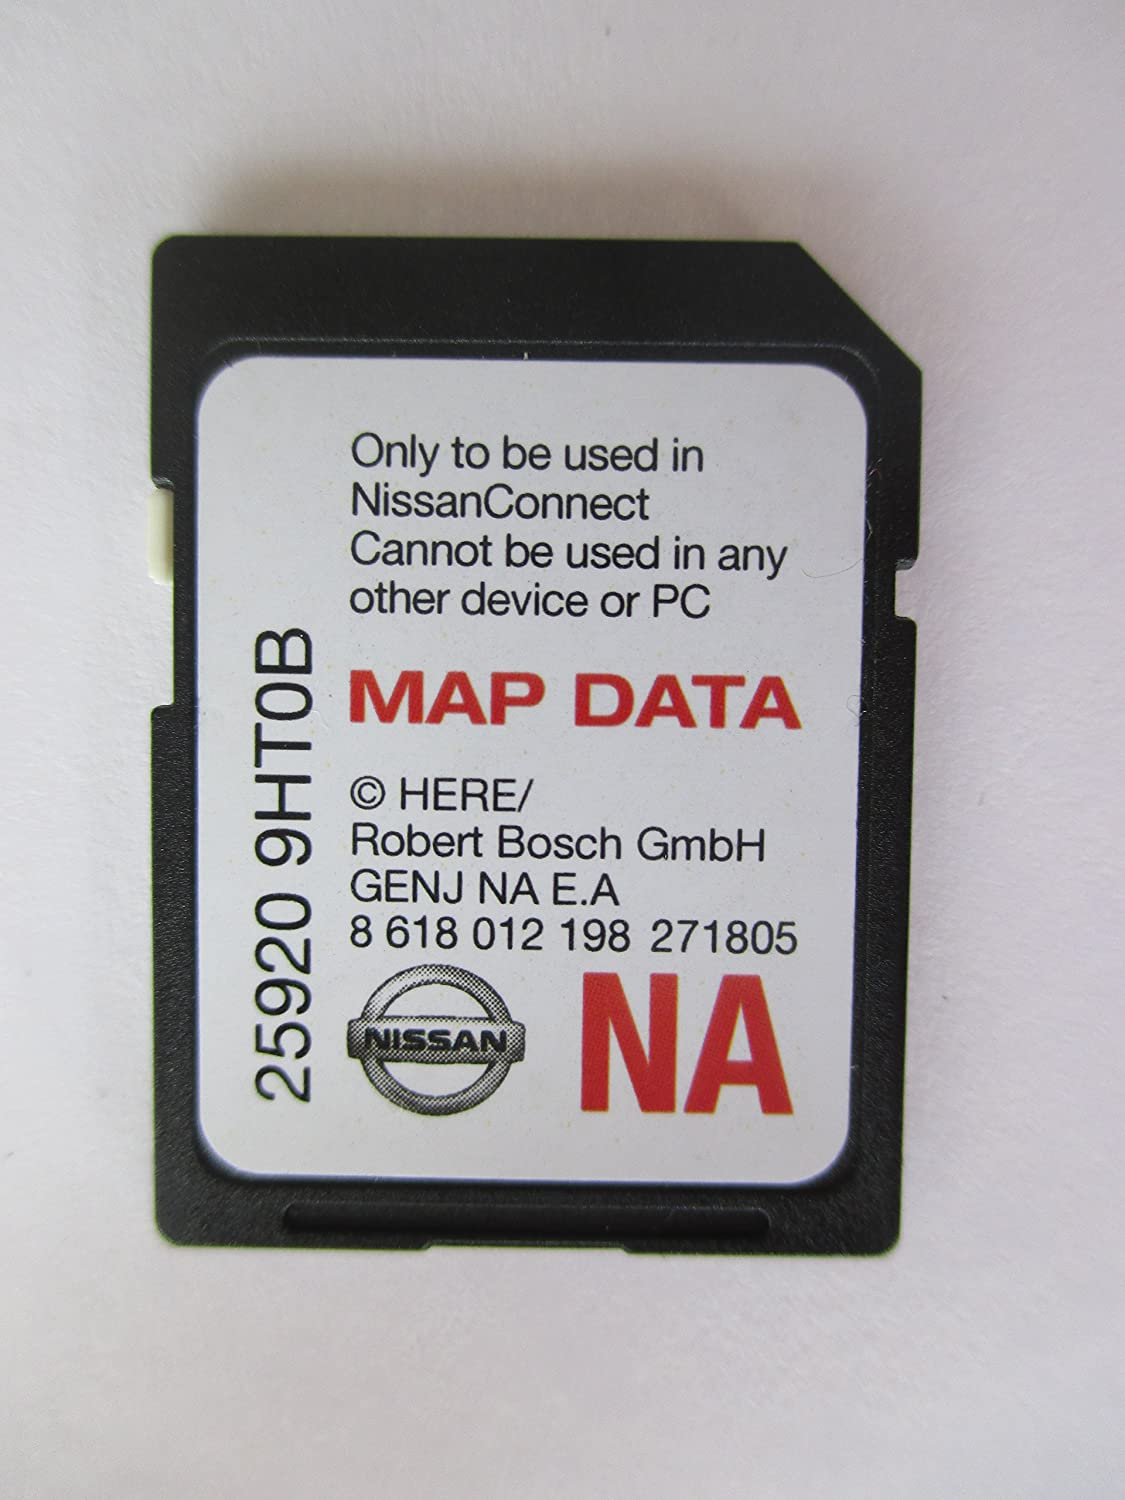 9HT0B NISSAN Connect SD Card, Navigation GPS MAP Data, NAVTEQ,North America US Canada 2018 Update, 25920-9HT0B,fits 14thru 18 Rogue Juke Altima SENTRA ...